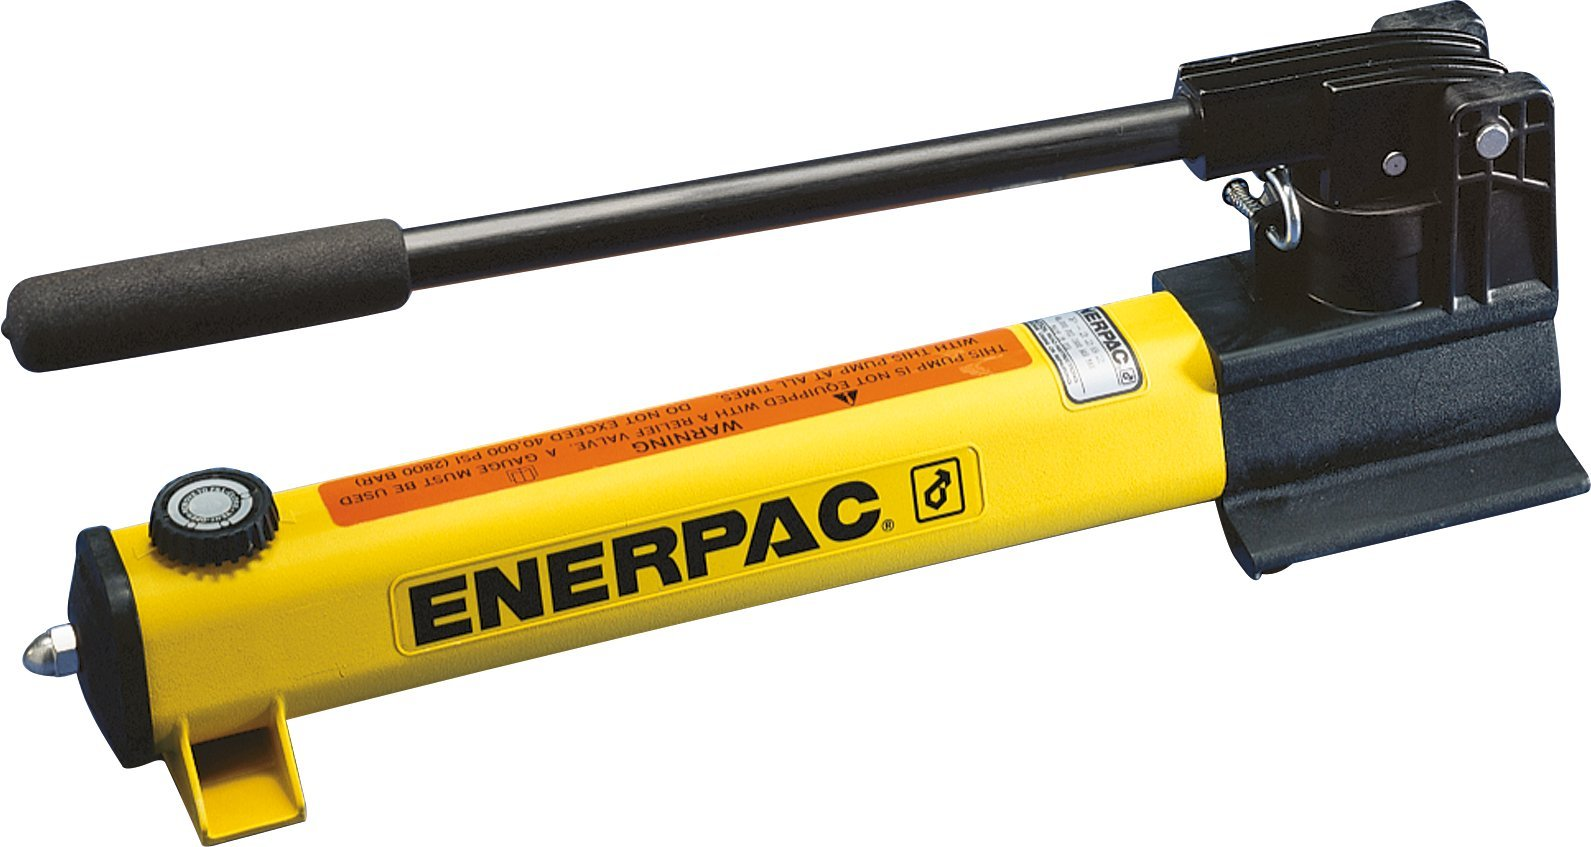 Enerpac P-2282 Ultra High Pressure Hand Pump with 40,000 Pounds Per Square Inch